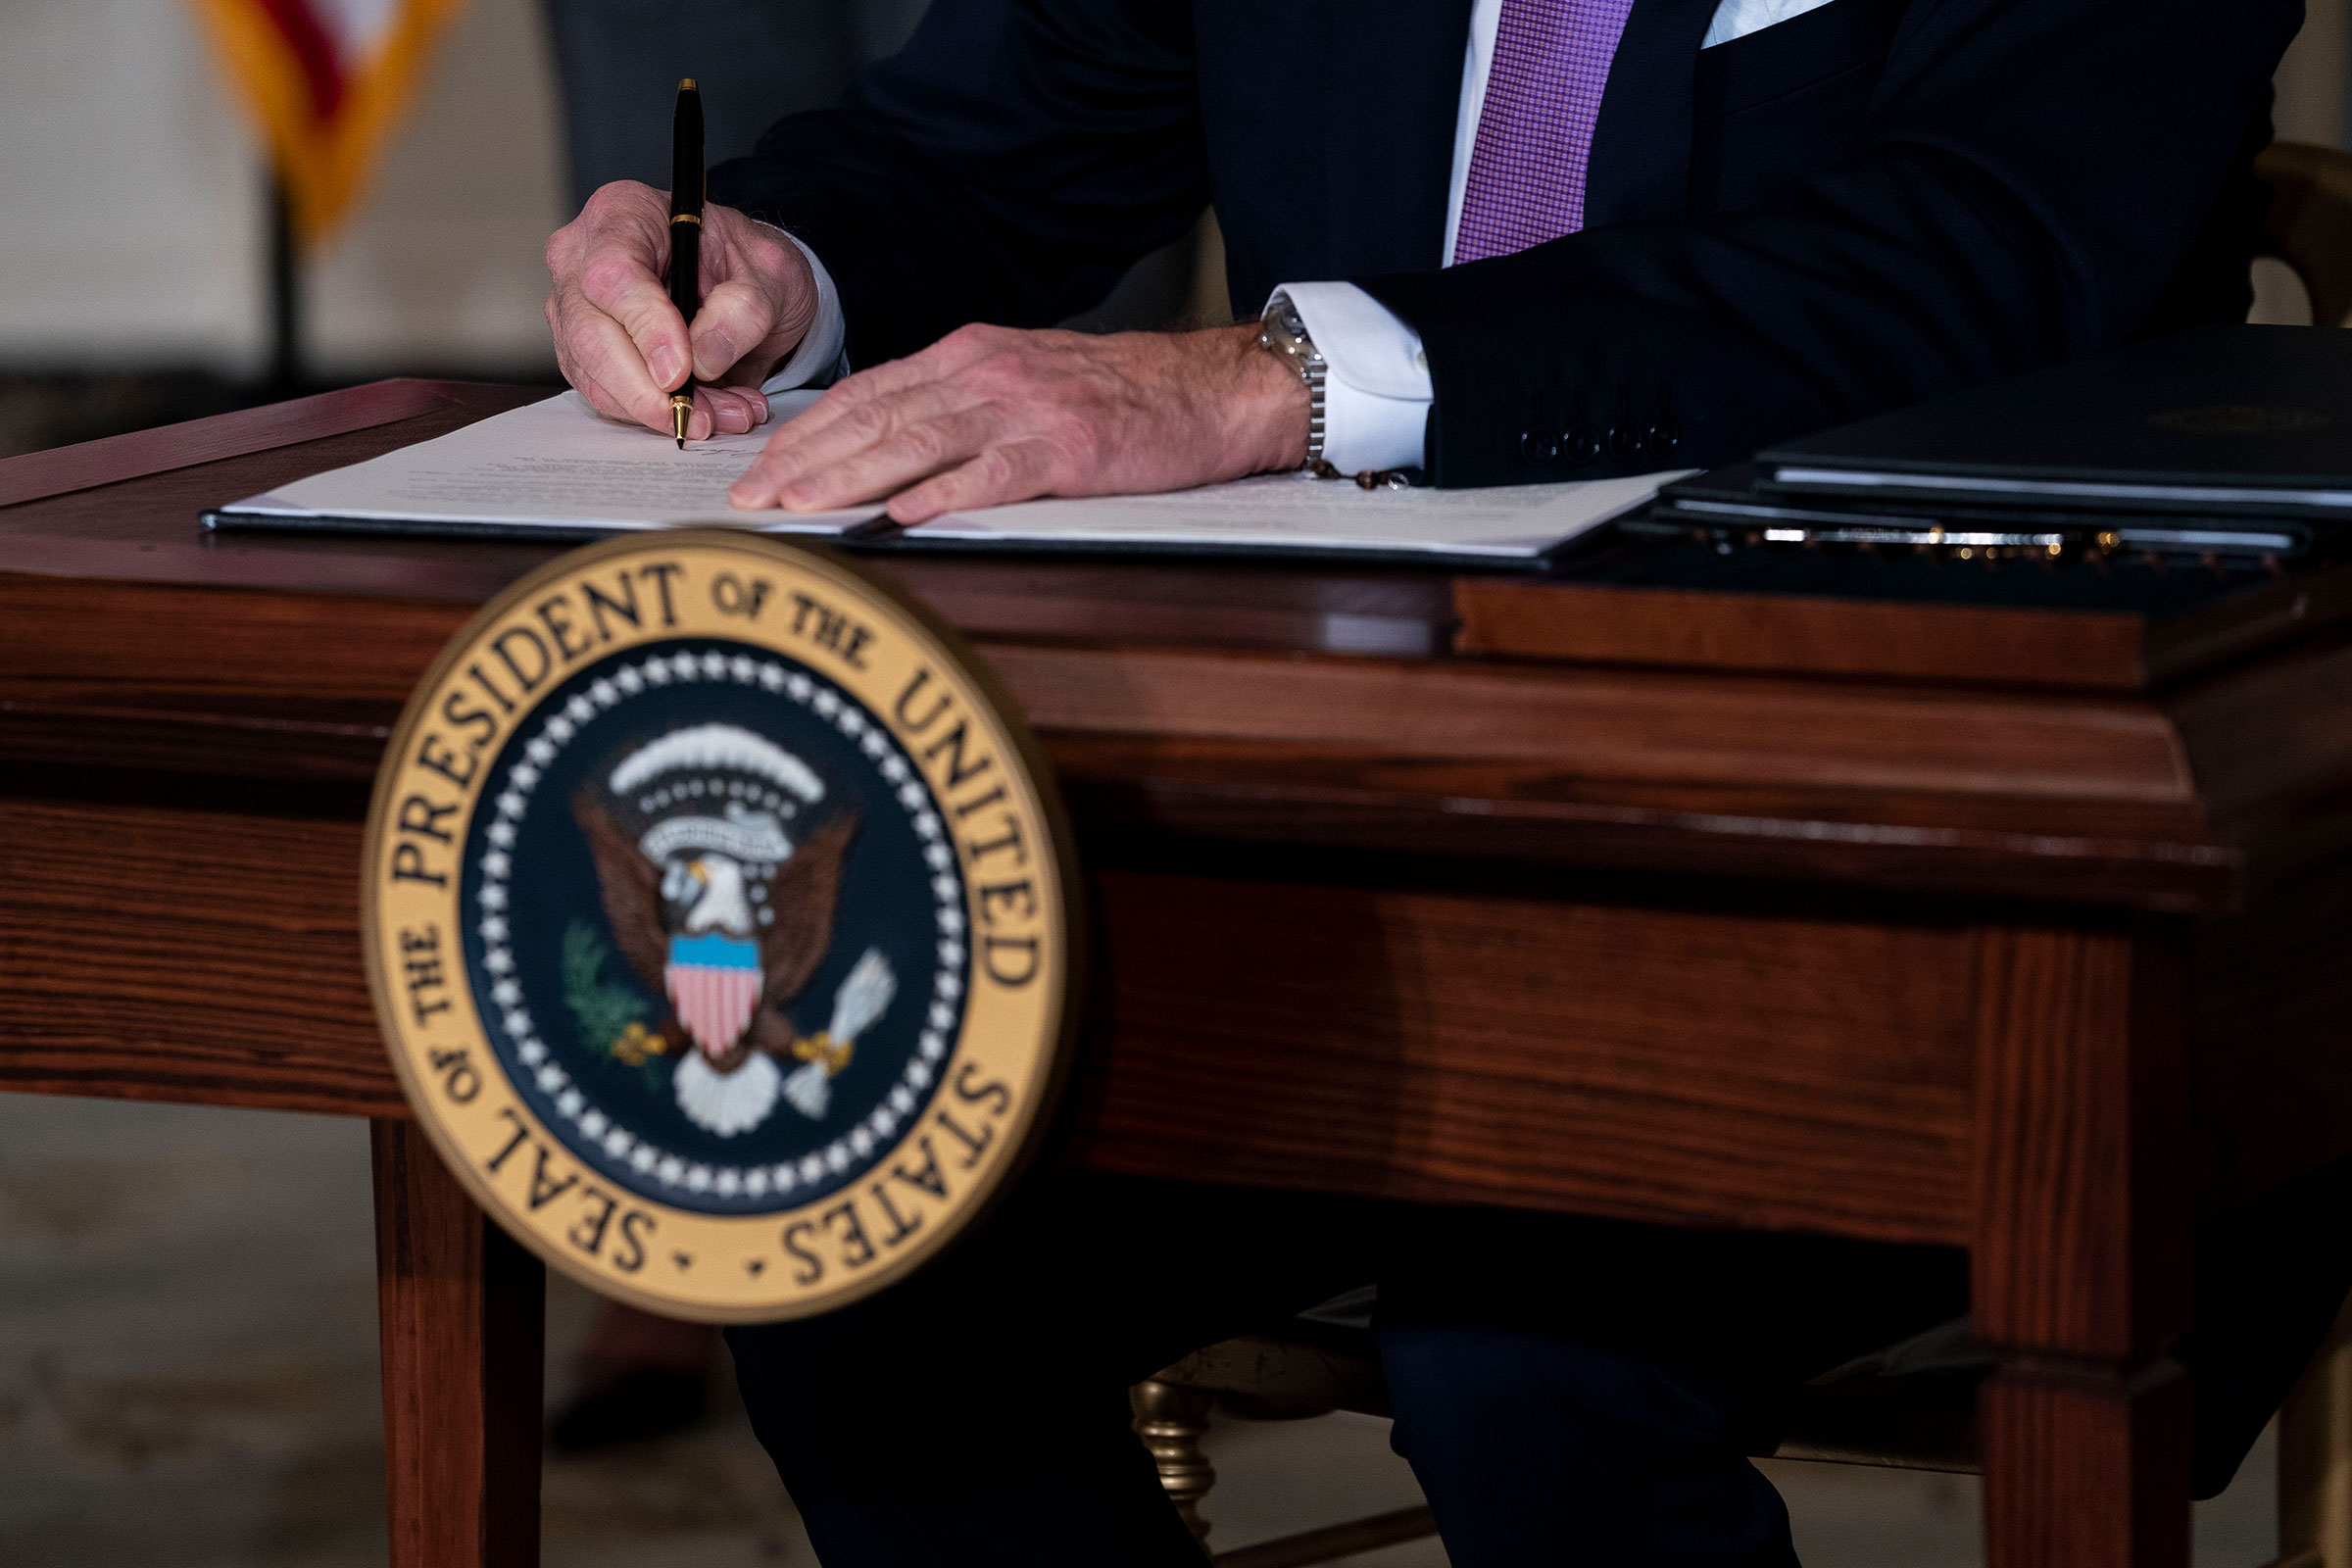 President Joe Biden signs the last of a series of executive actions during a ceremony at the White House in Washington on Jan. 26, 2021.